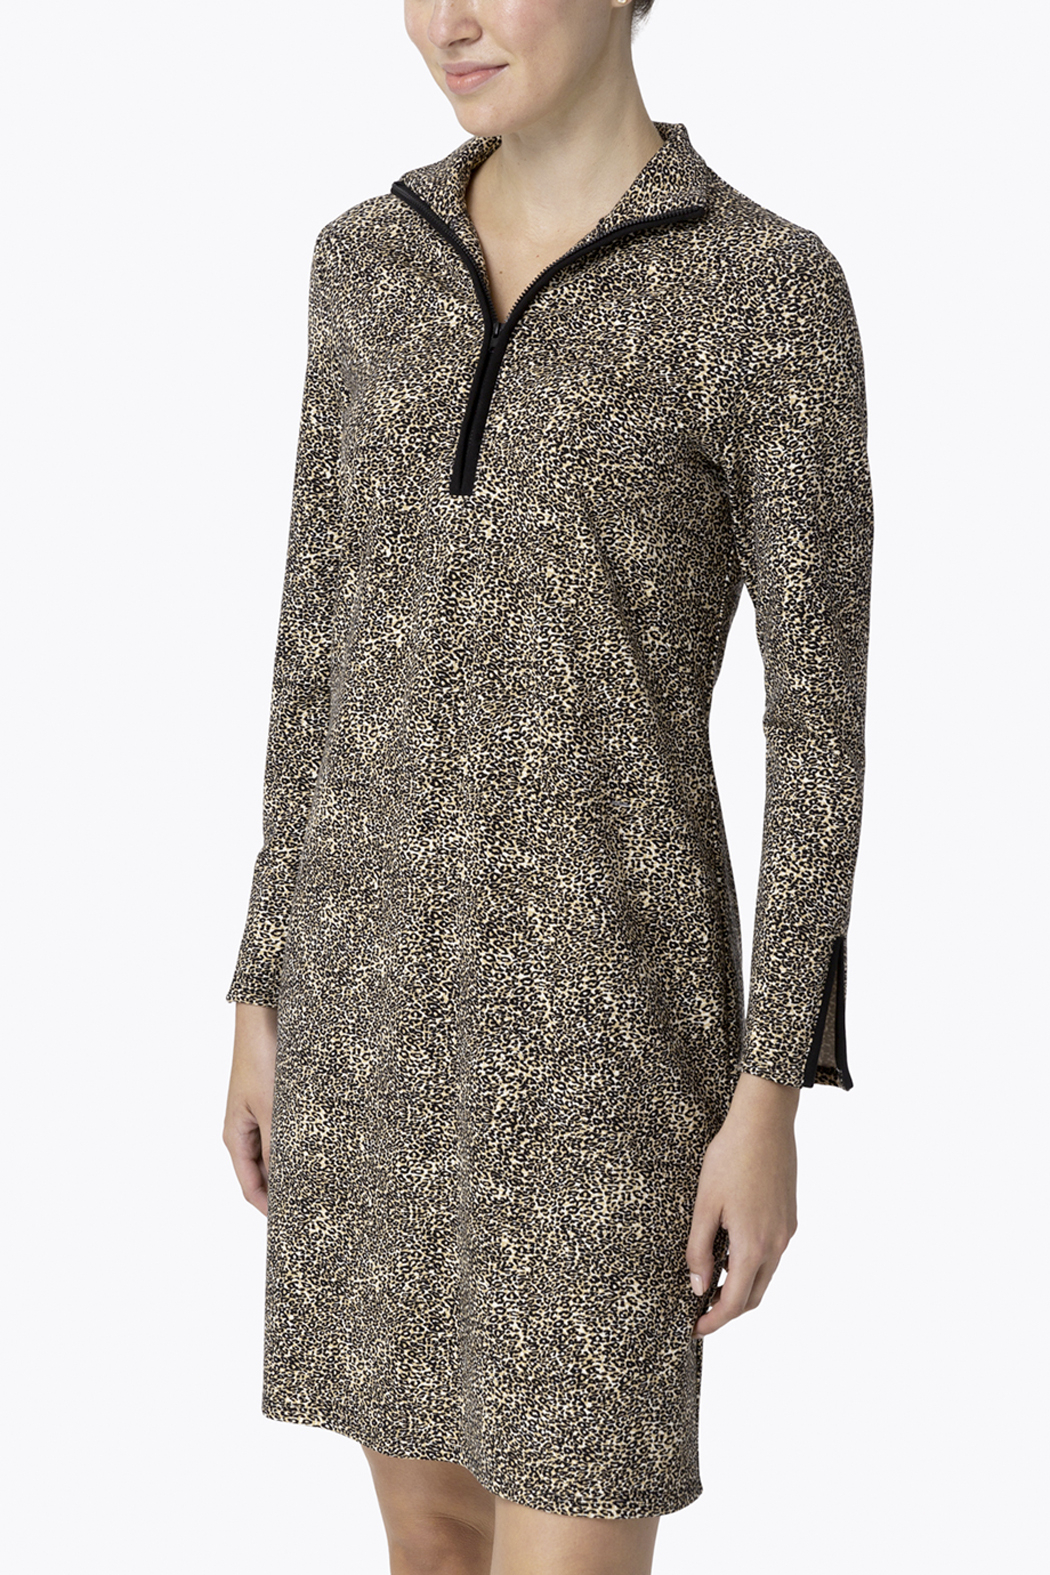 Jude Connally Anna Textured Camel/Cheetah Ponte Dress - Main Image